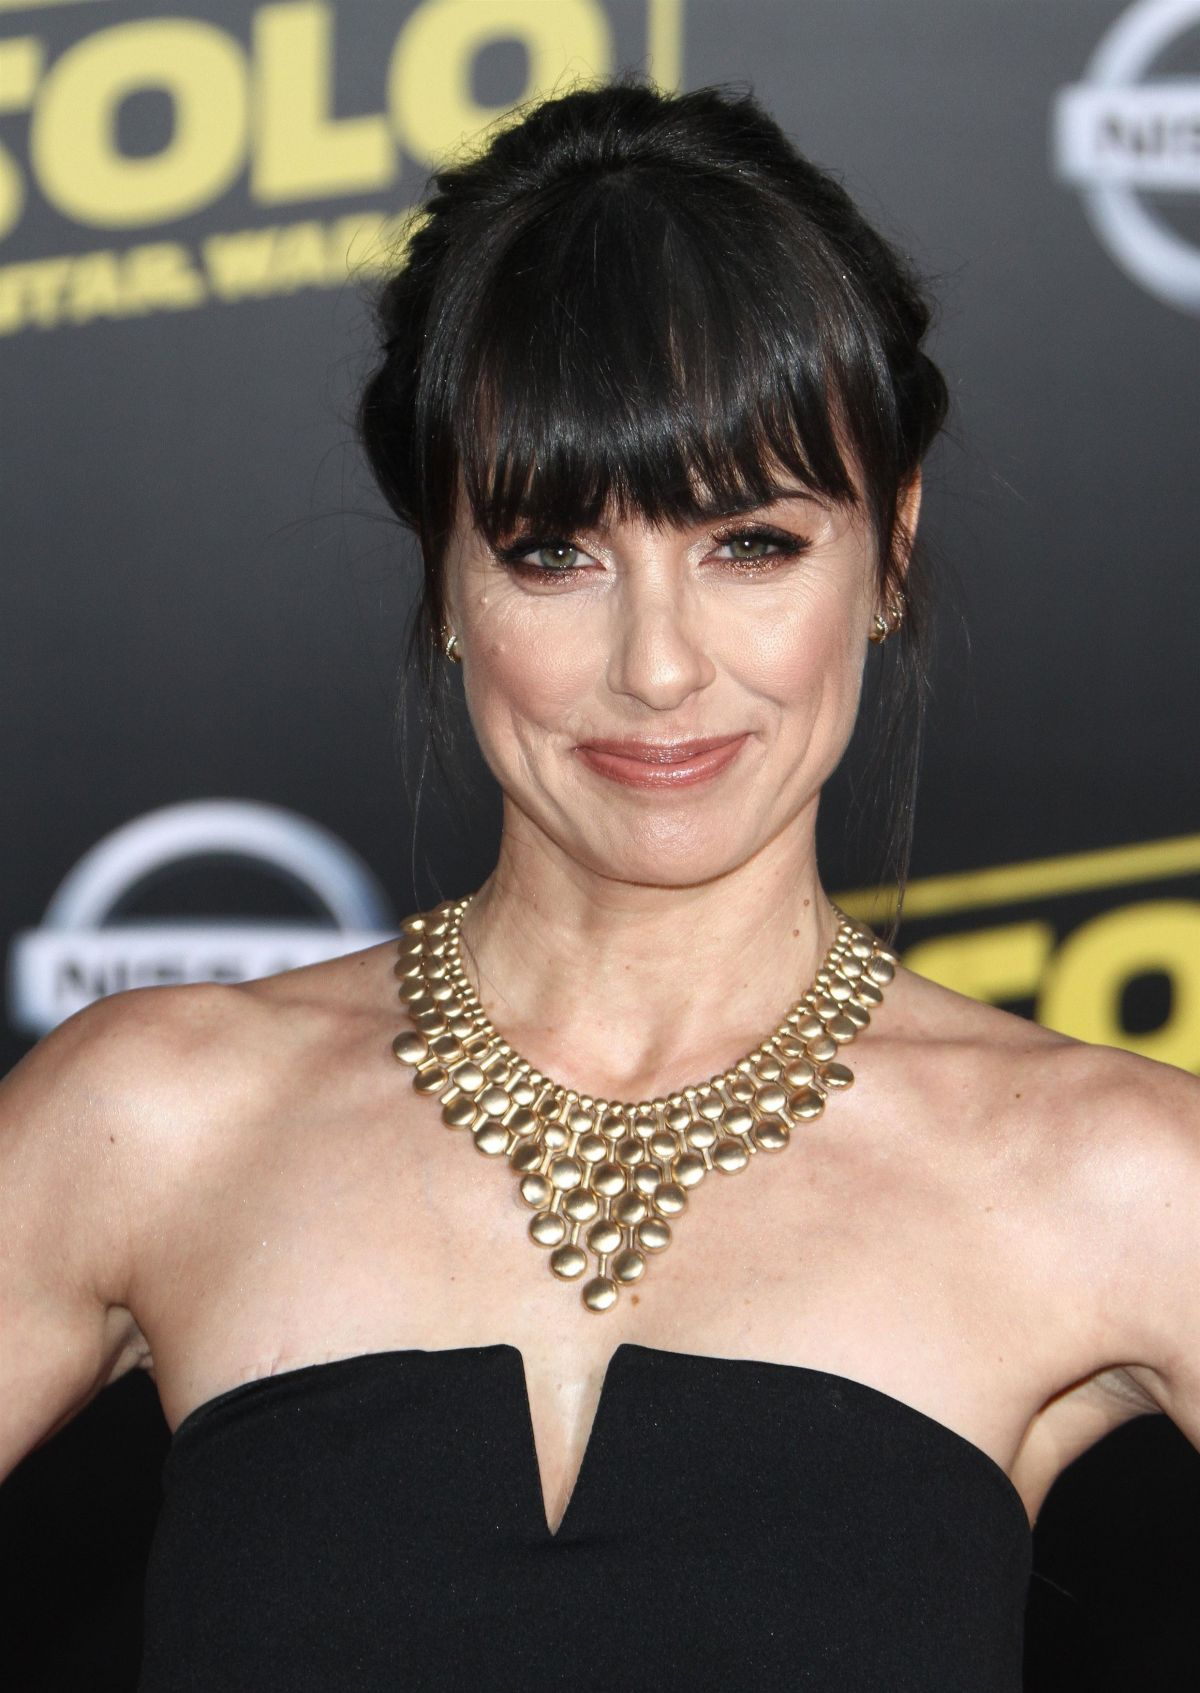 Forum on this topic: Megan Blake, constance-zimmer/